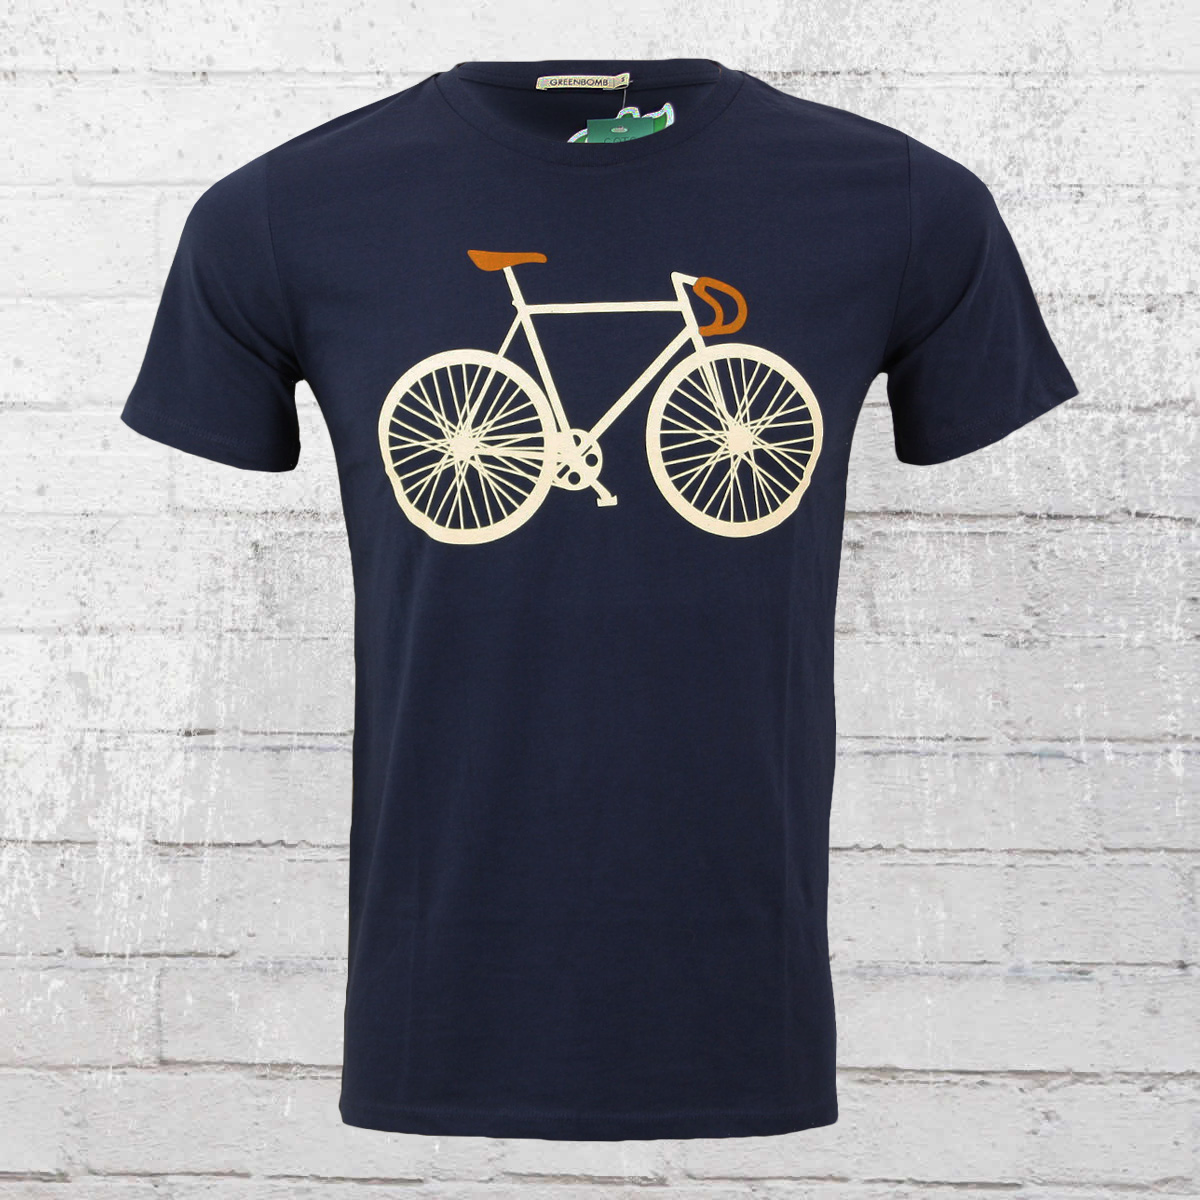 694340cb7 Pig on a bicycle apparel t-shirt - Ecosia